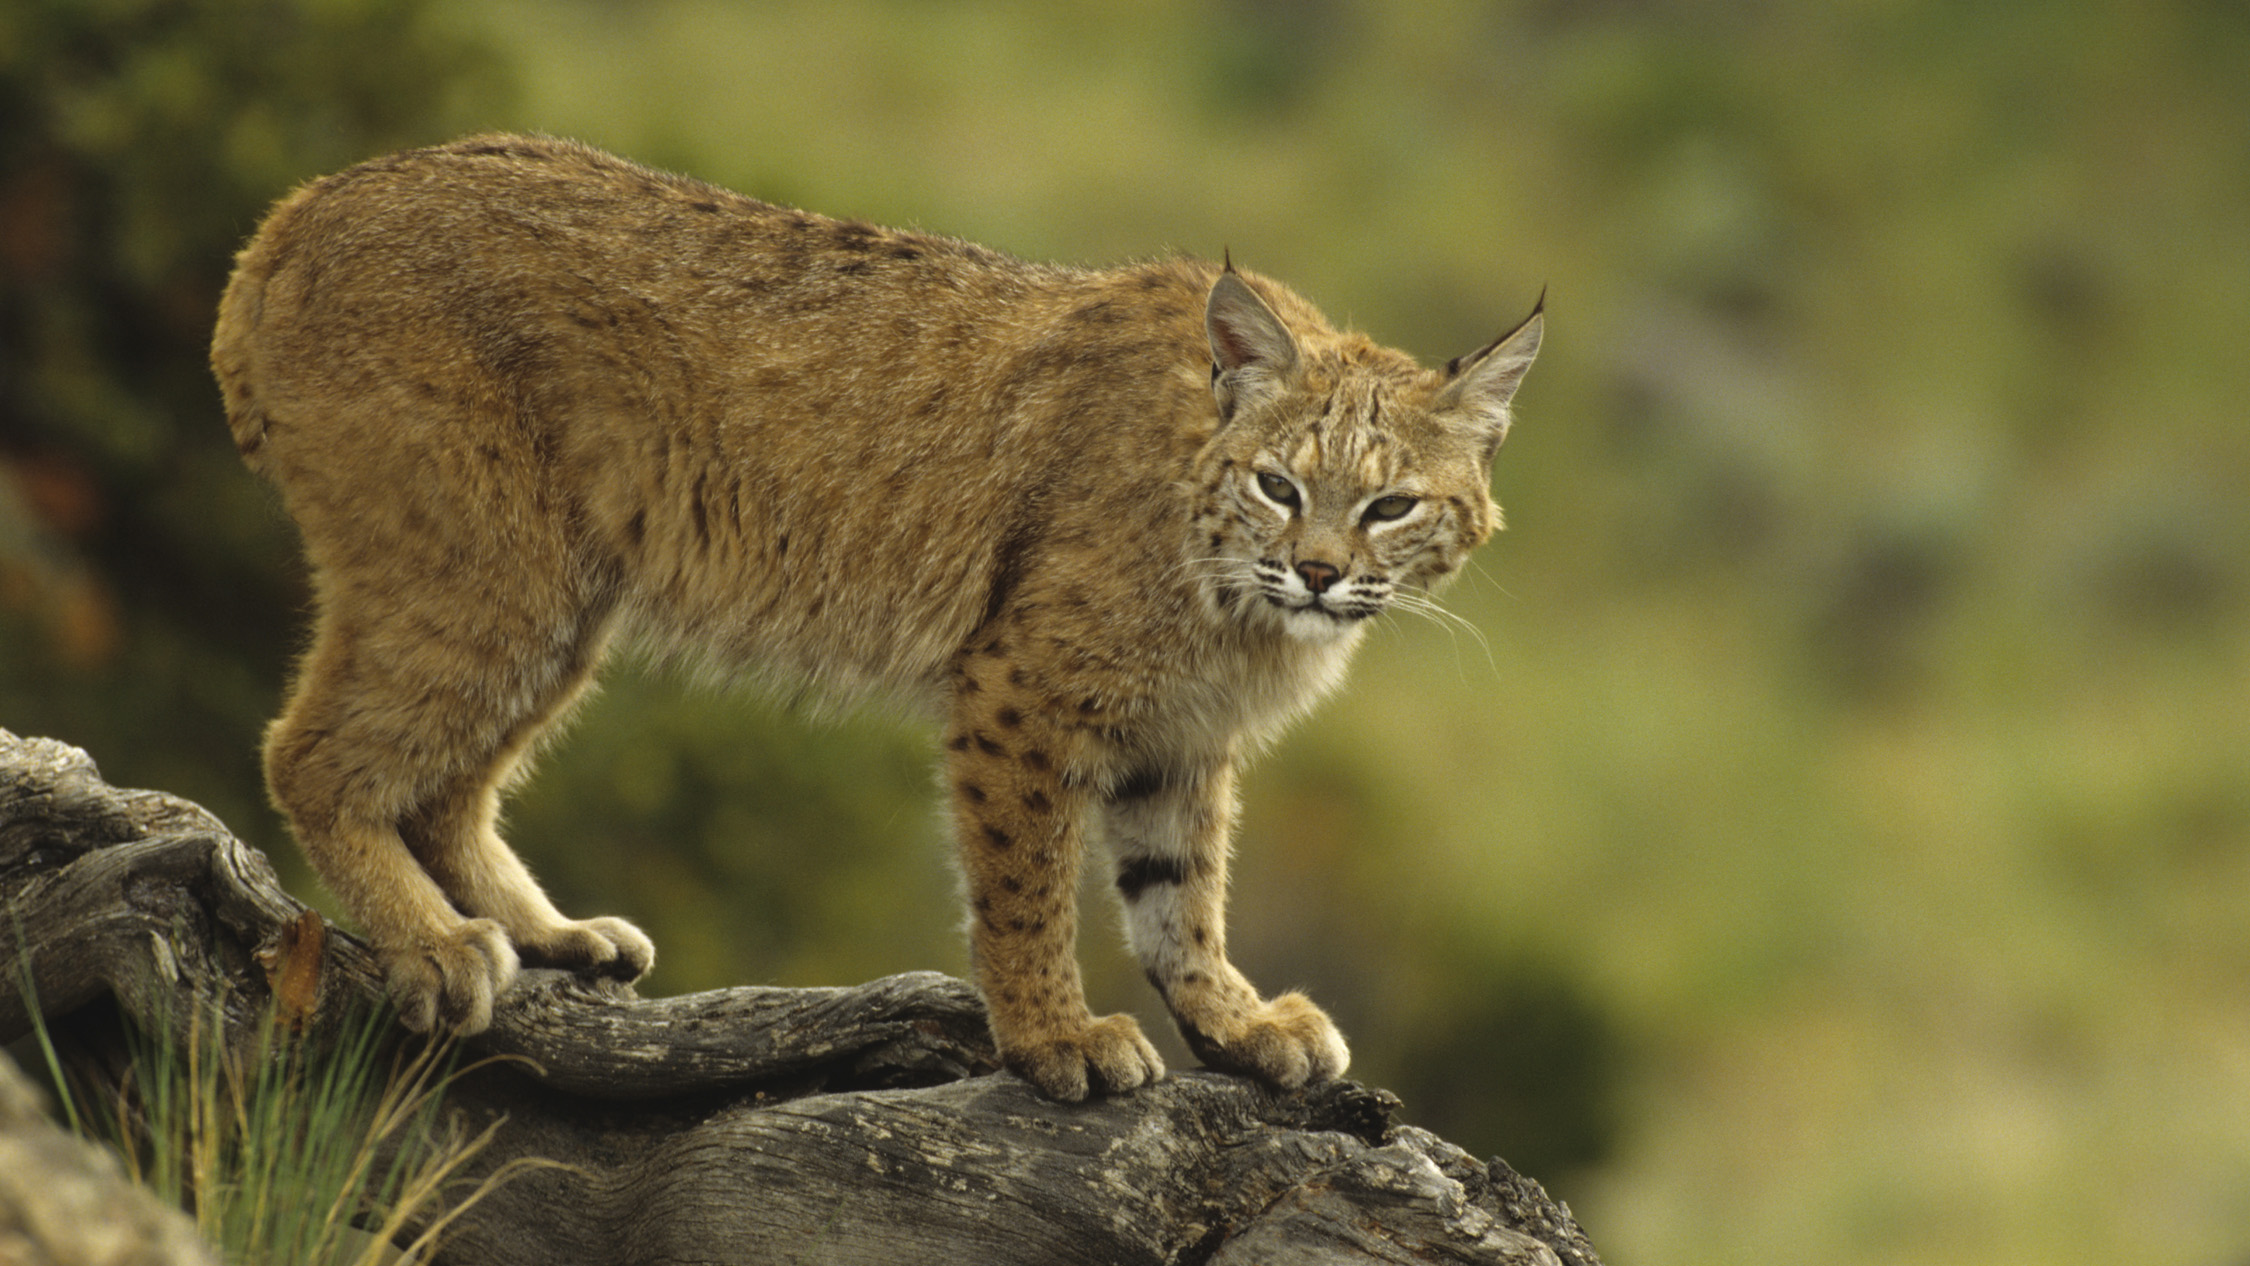 Sightings are rare, but the San Gabriel Mountains are excellent bobcat habitat.